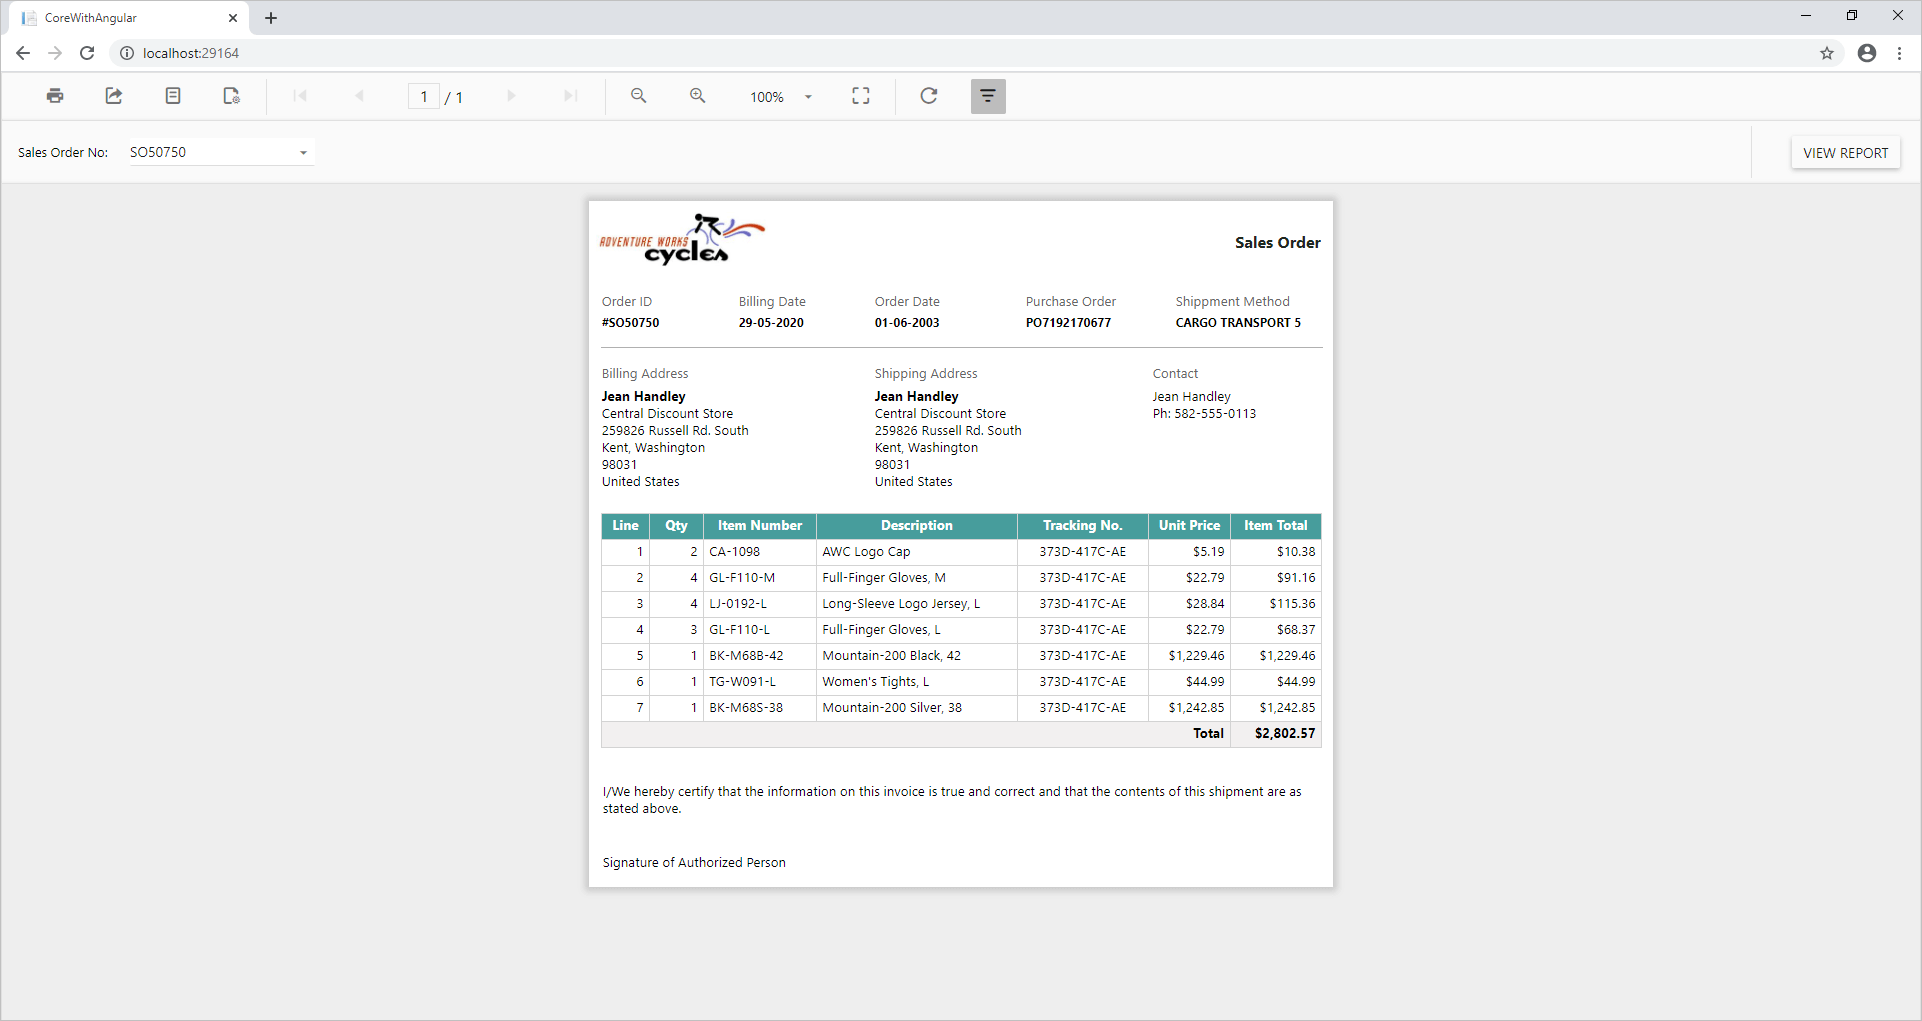 Sales Report in ASP.NET Core with Angular application